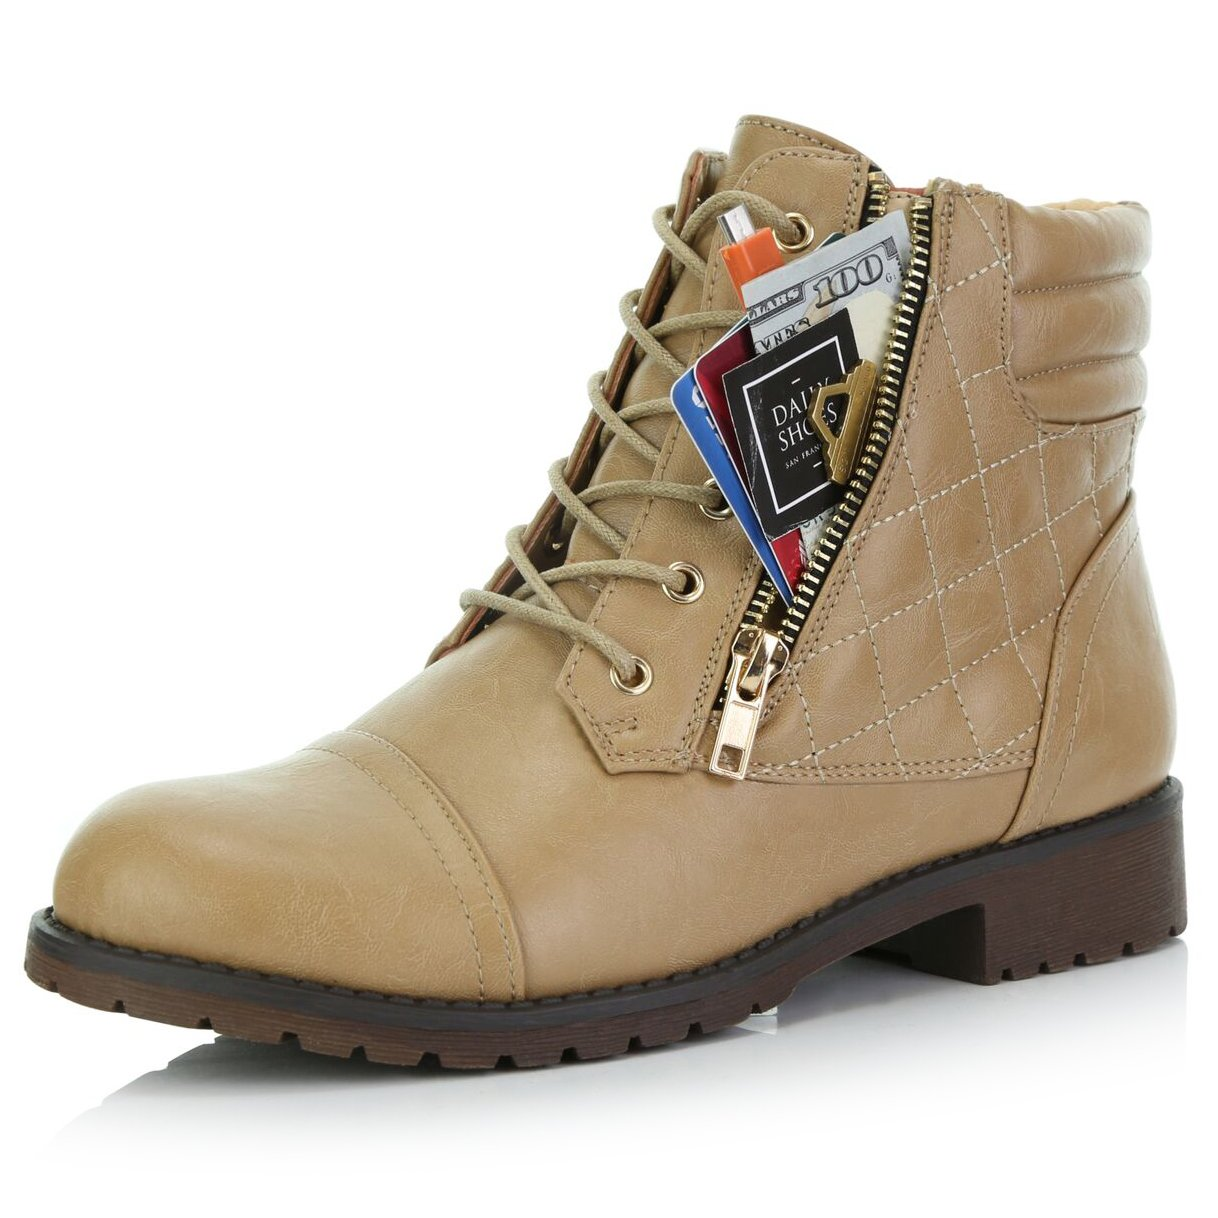 DailyShoes Women's Military Lace up Buckle Combat Boots Ankle High Exclusive Quilted Credit Card Pocket Bootie B015TTIEJA 8.5 B(M) US|Beige Pu